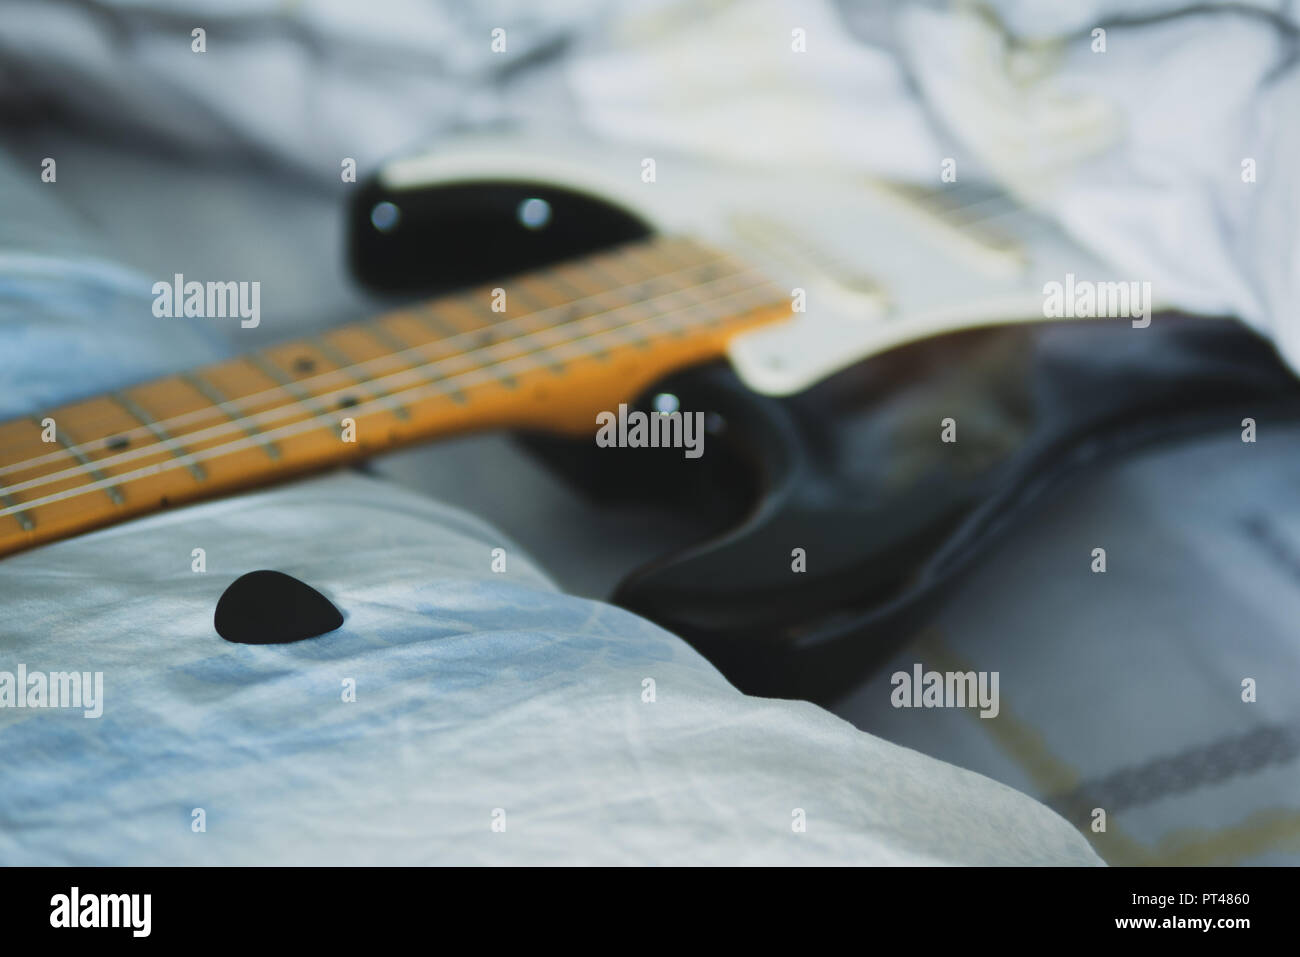 Electric Guitar And Guitar Pick On Bed Stock Photo 221370408 Alamy